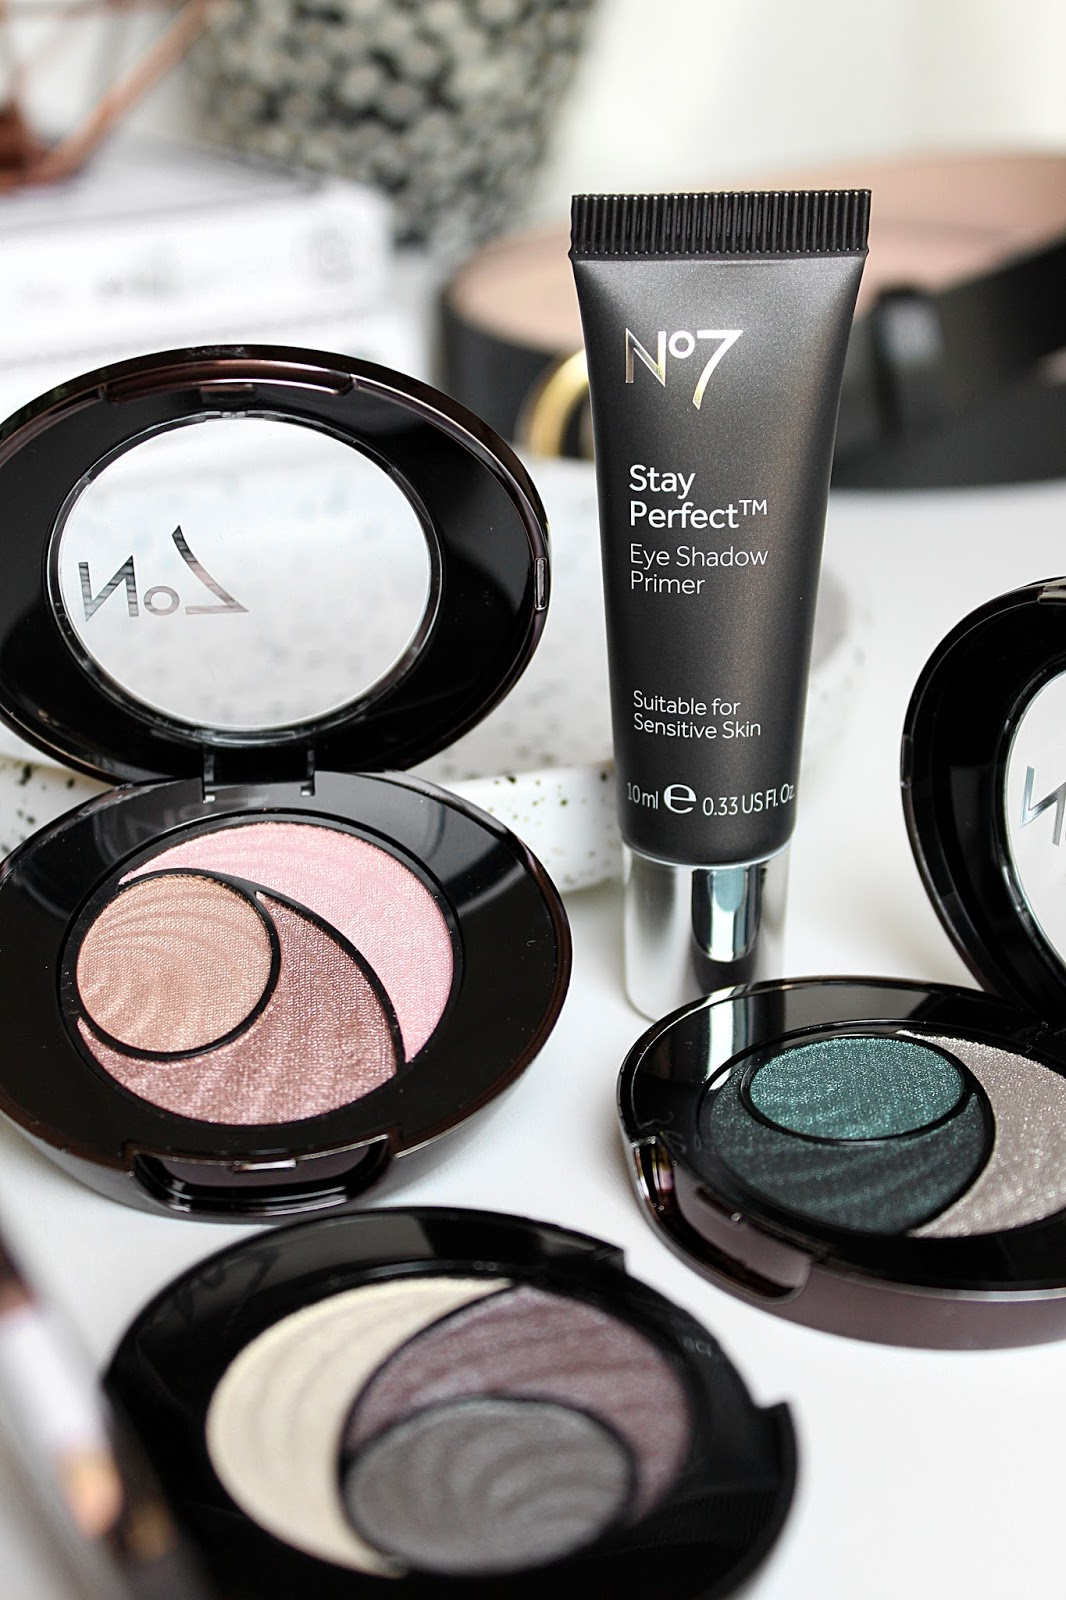 No7 Boots Stay Perfect Trio Eye Shadow Review